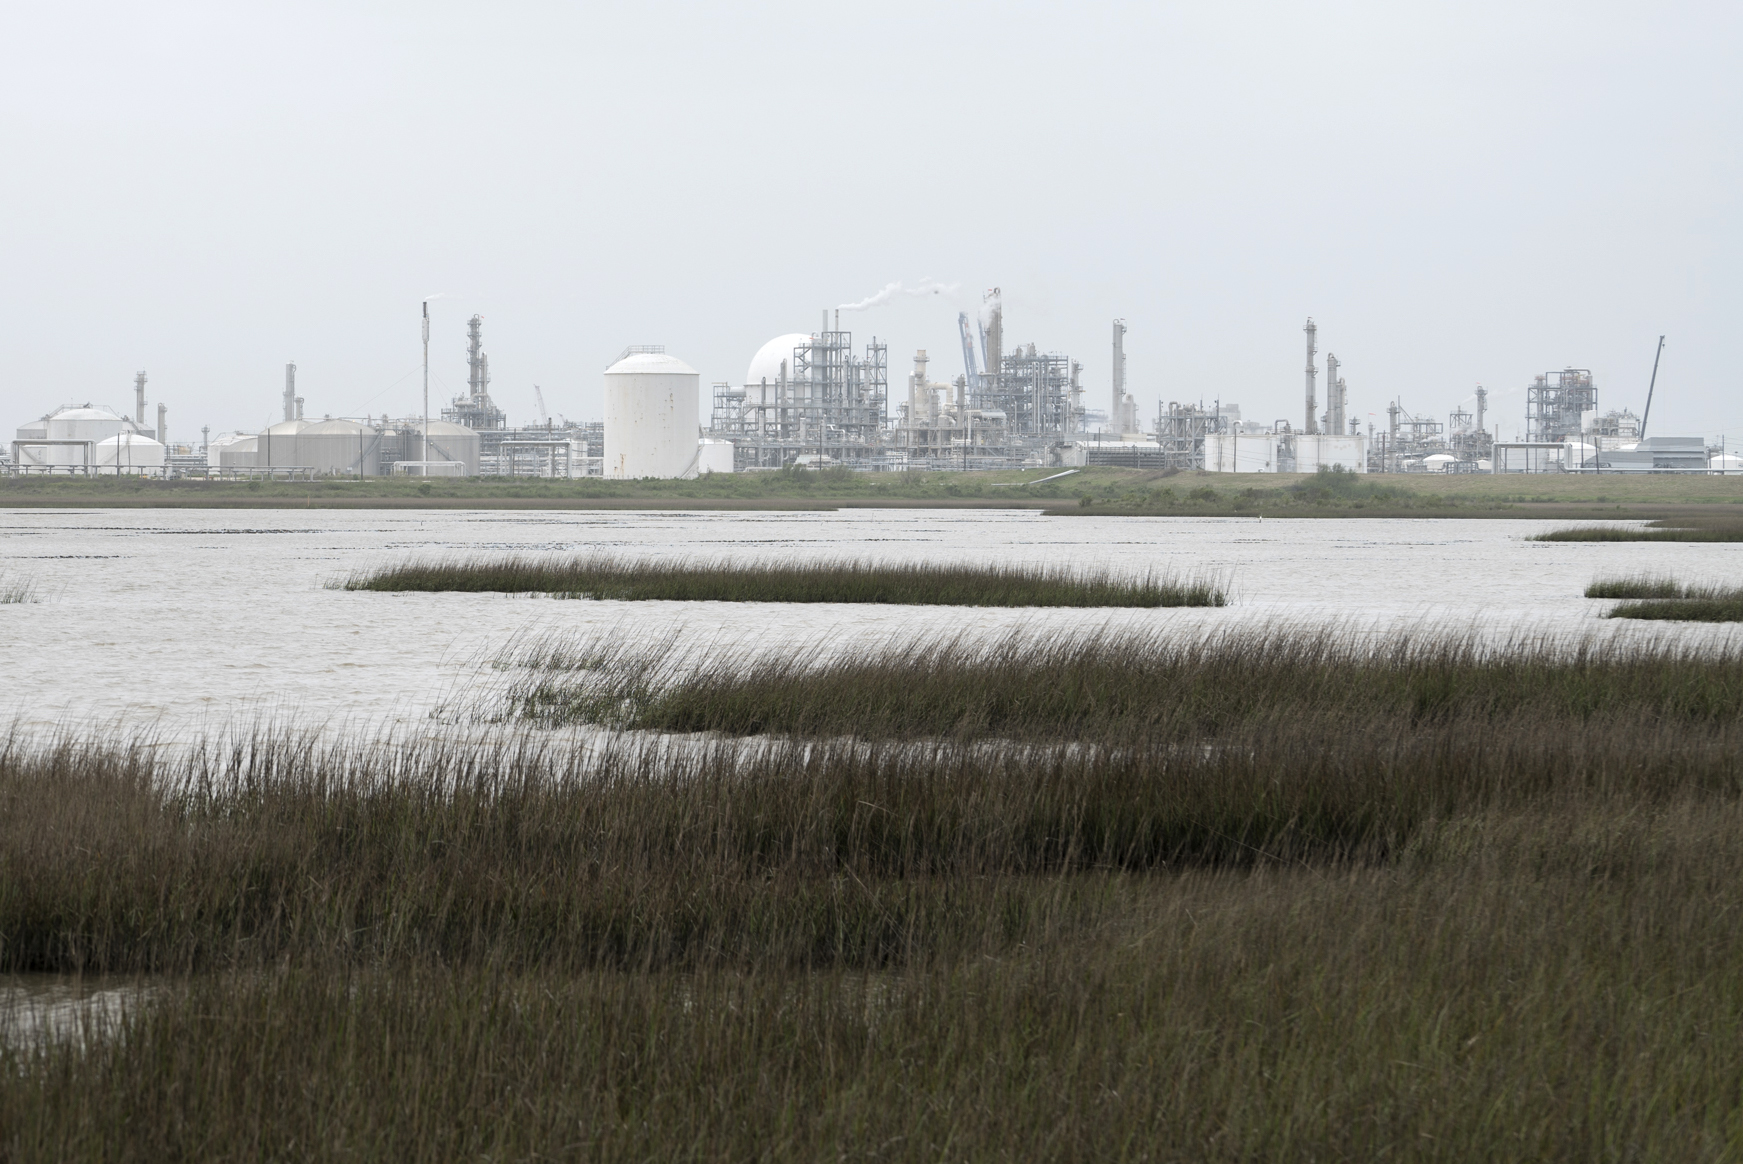 Salt water marshes near Dow Chemical Plant, Freeport, Texas